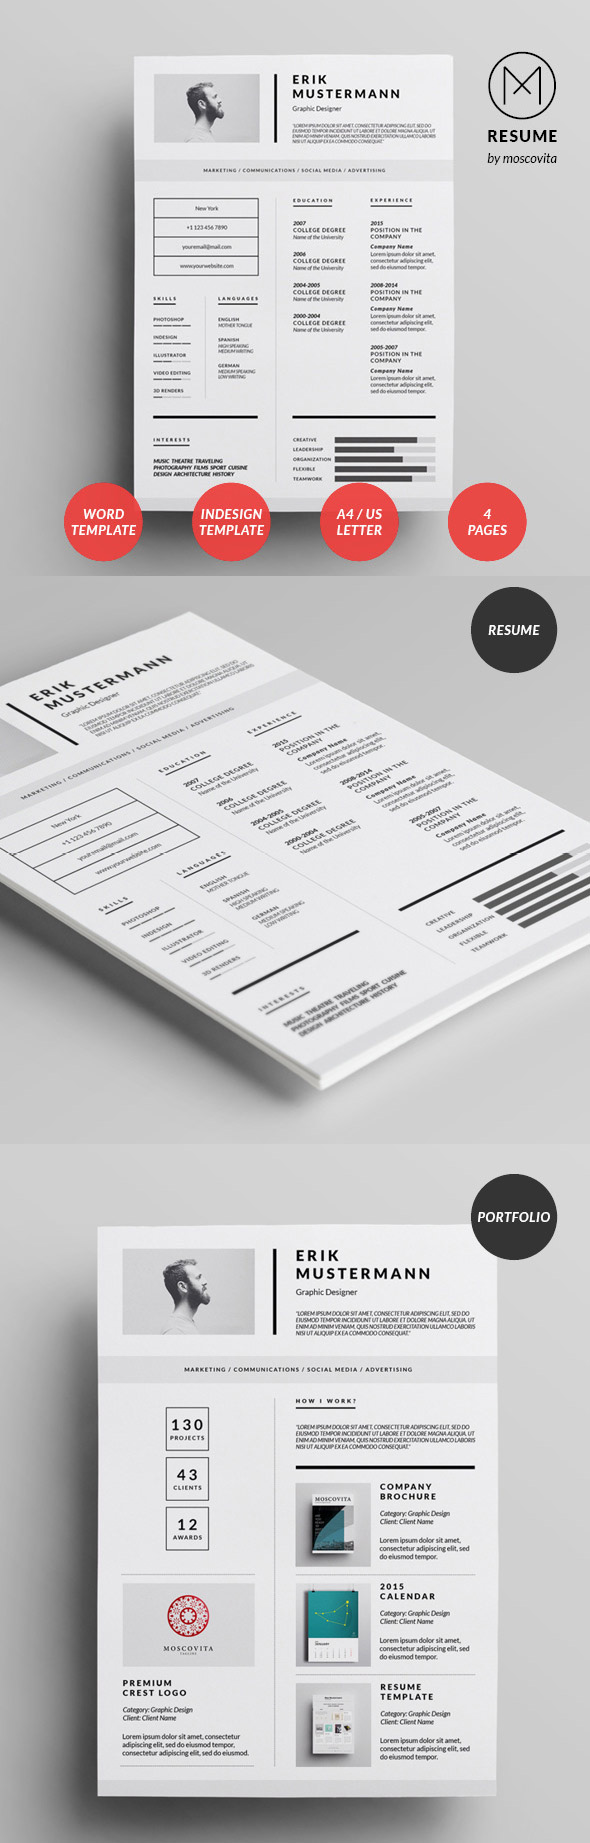 best resume templates for design graphic junctiongraphic junction awesome boyfriend Resume Awesome Resume Templates